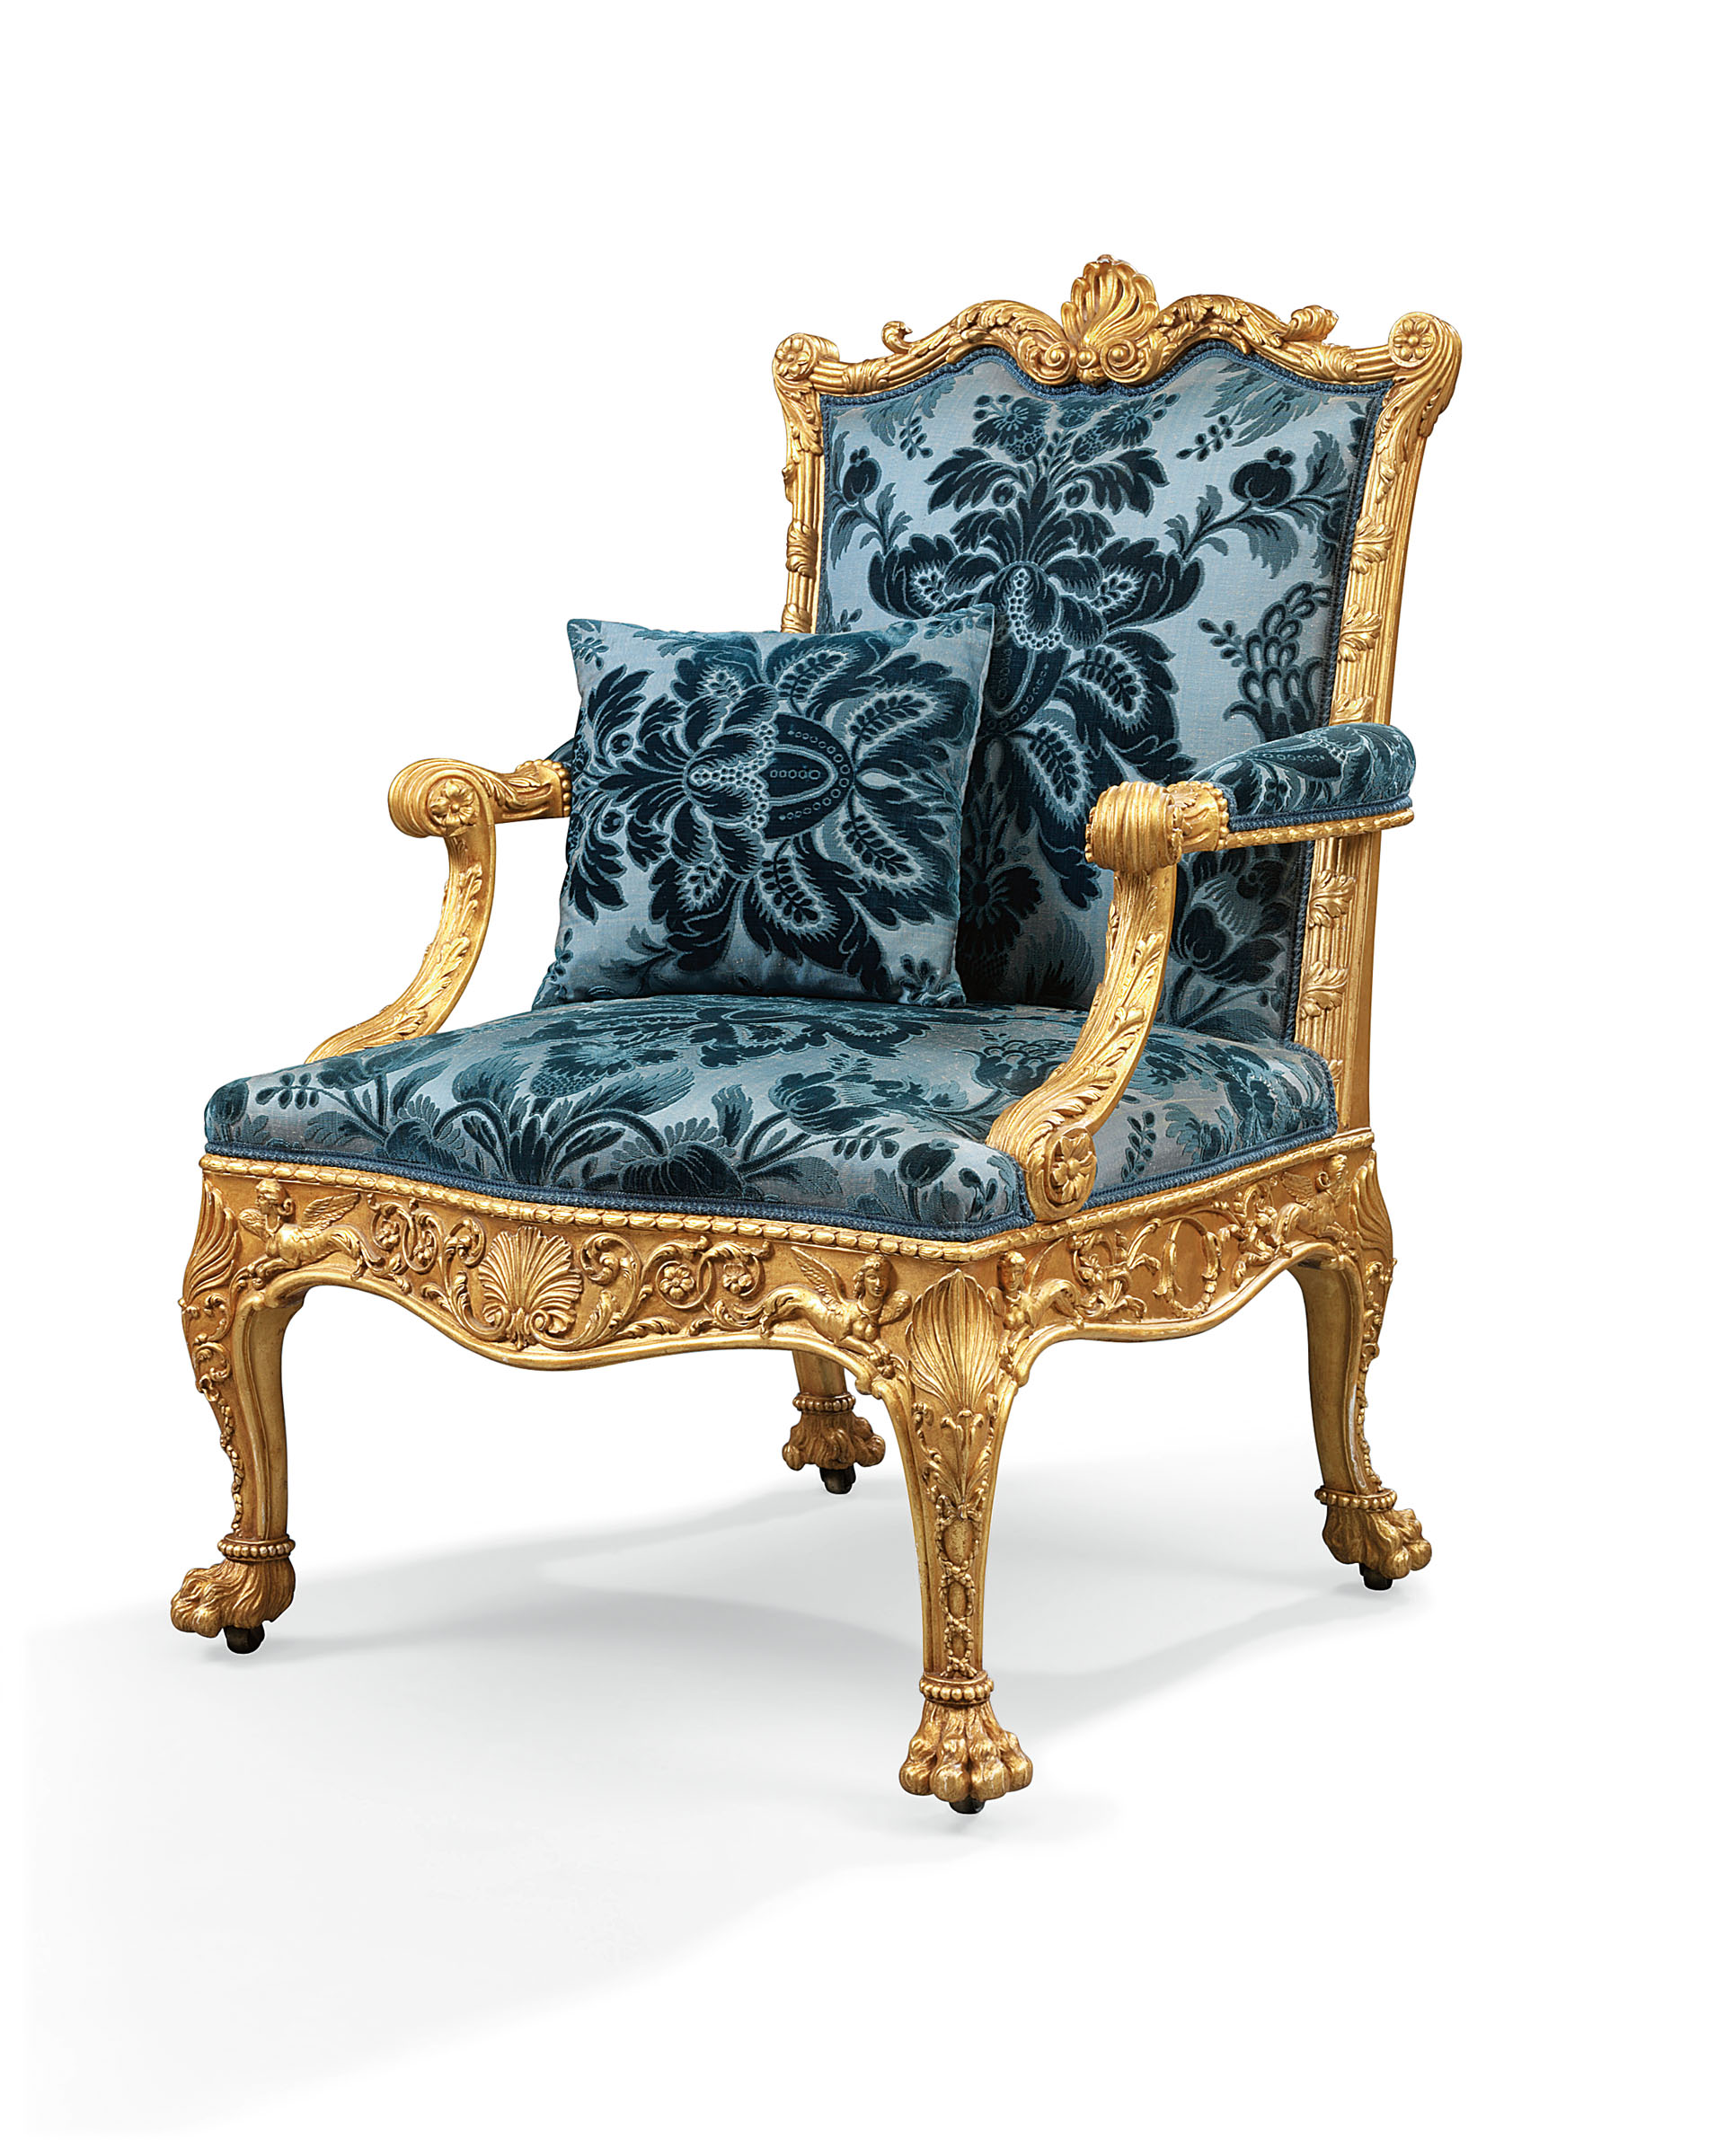 A George Iii Giltwood Armchair Designed By Robert Adam